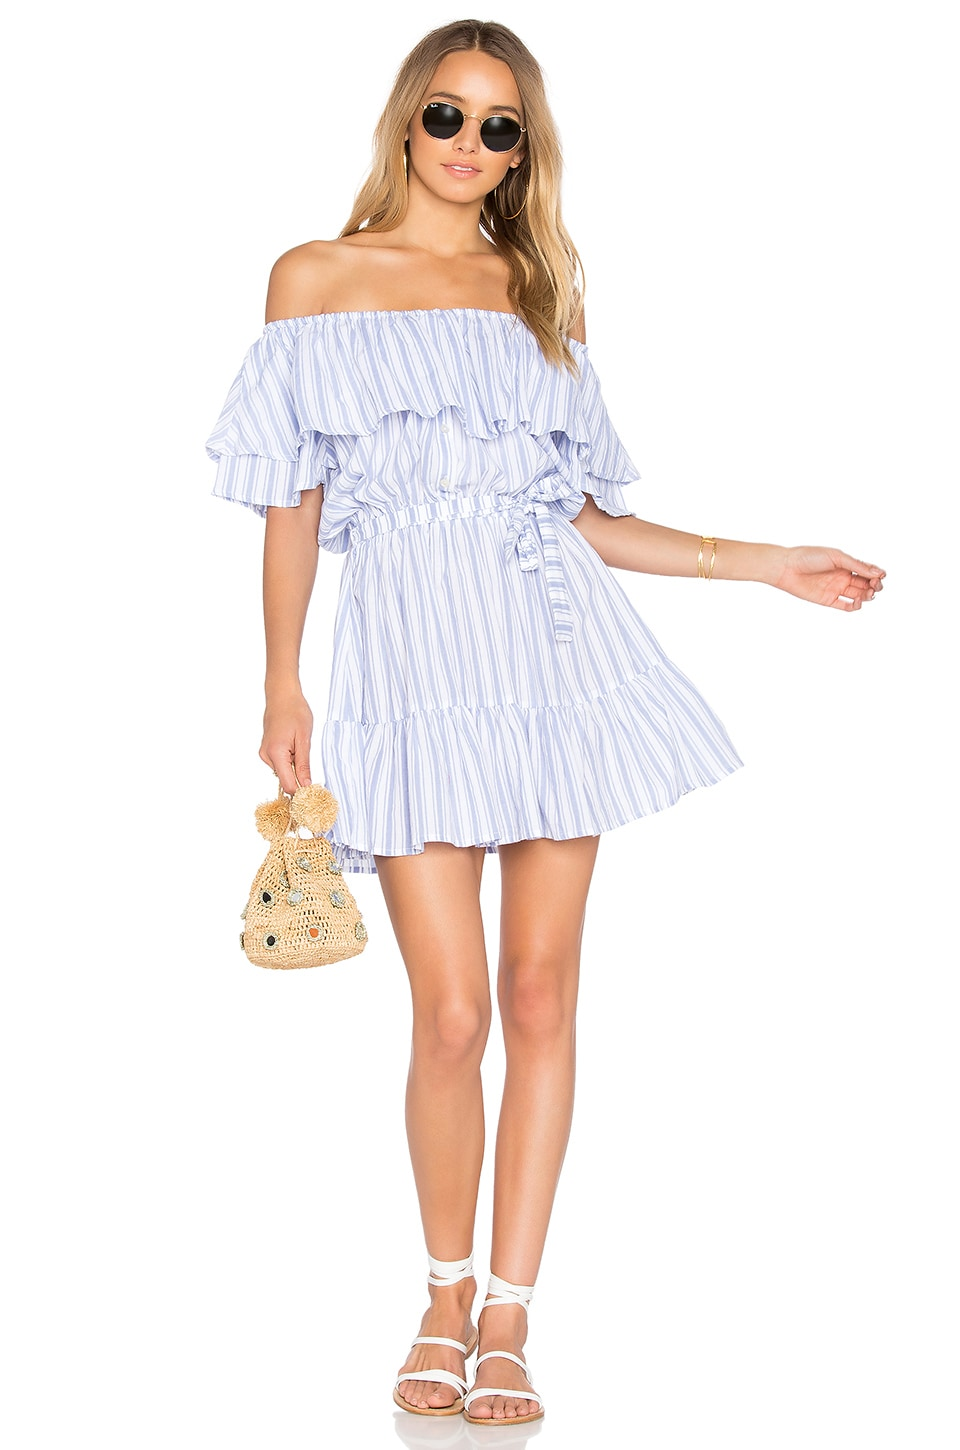 FAITHFULL THE BRAND x REVOLVE Aura Dress in Blue and White Stripe